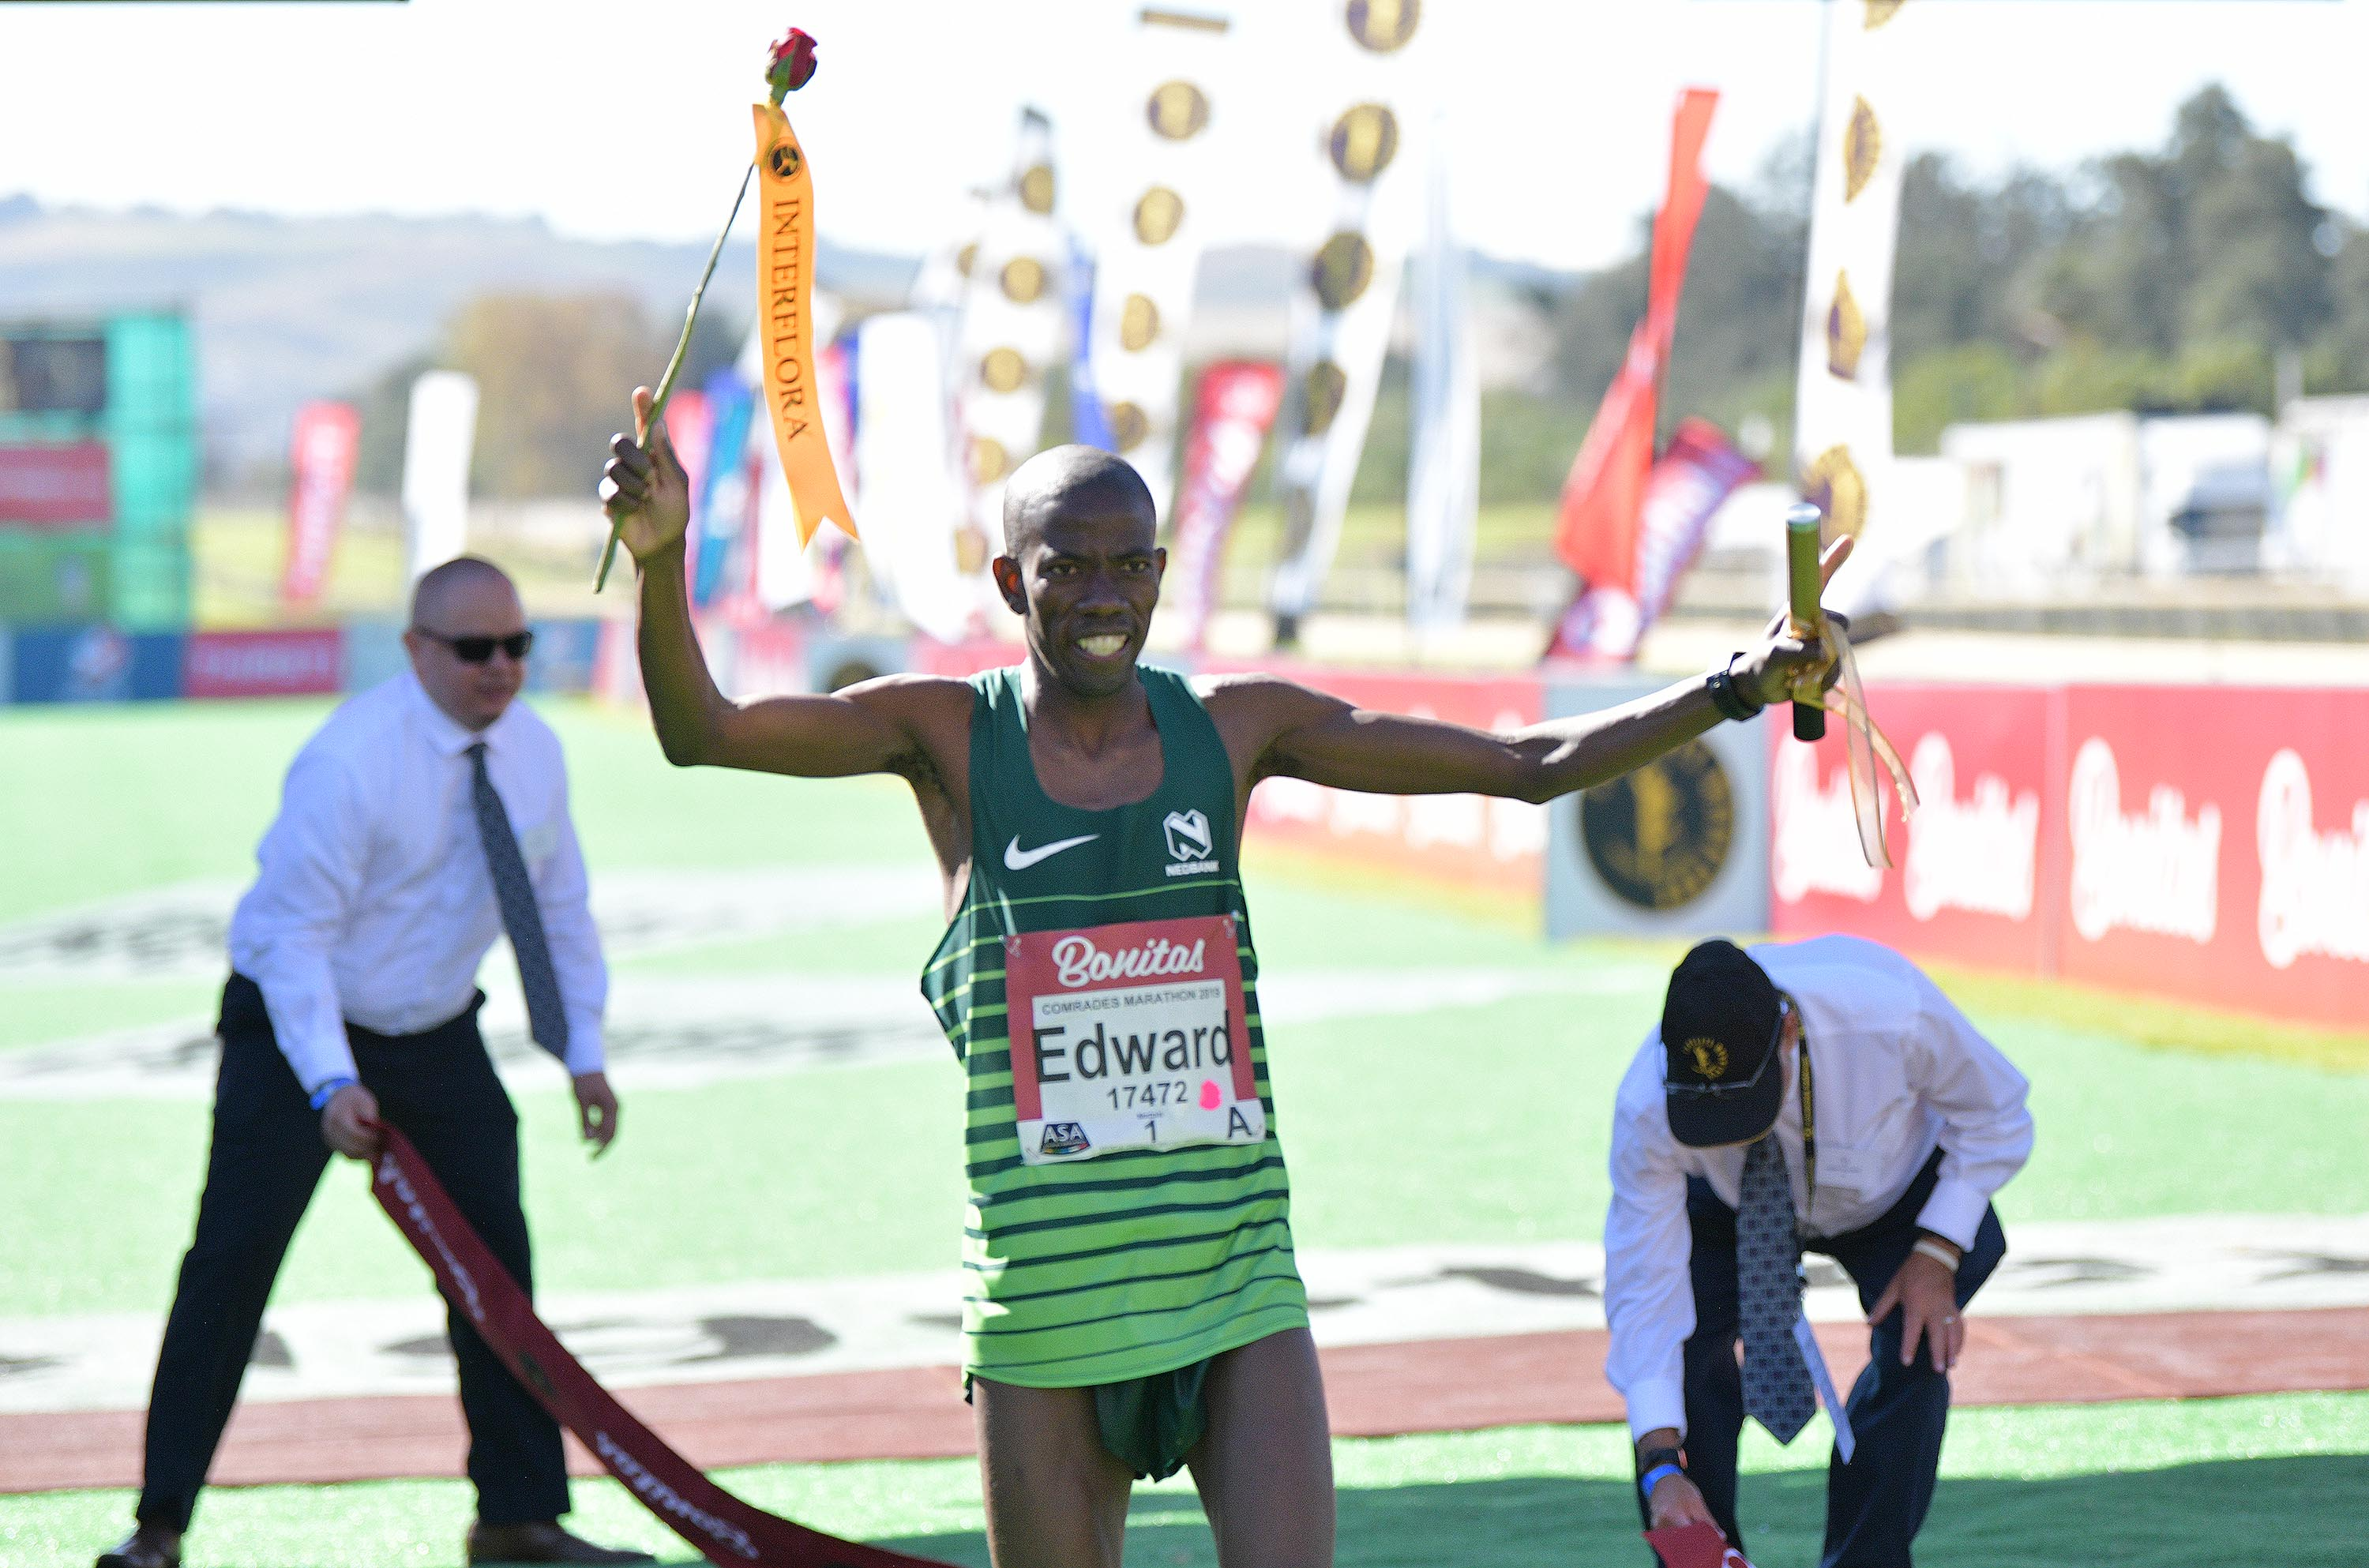 Edward Mothibi winner of the 94th Comrades Marathon on June 09, 2019 in Durban, South Africa.